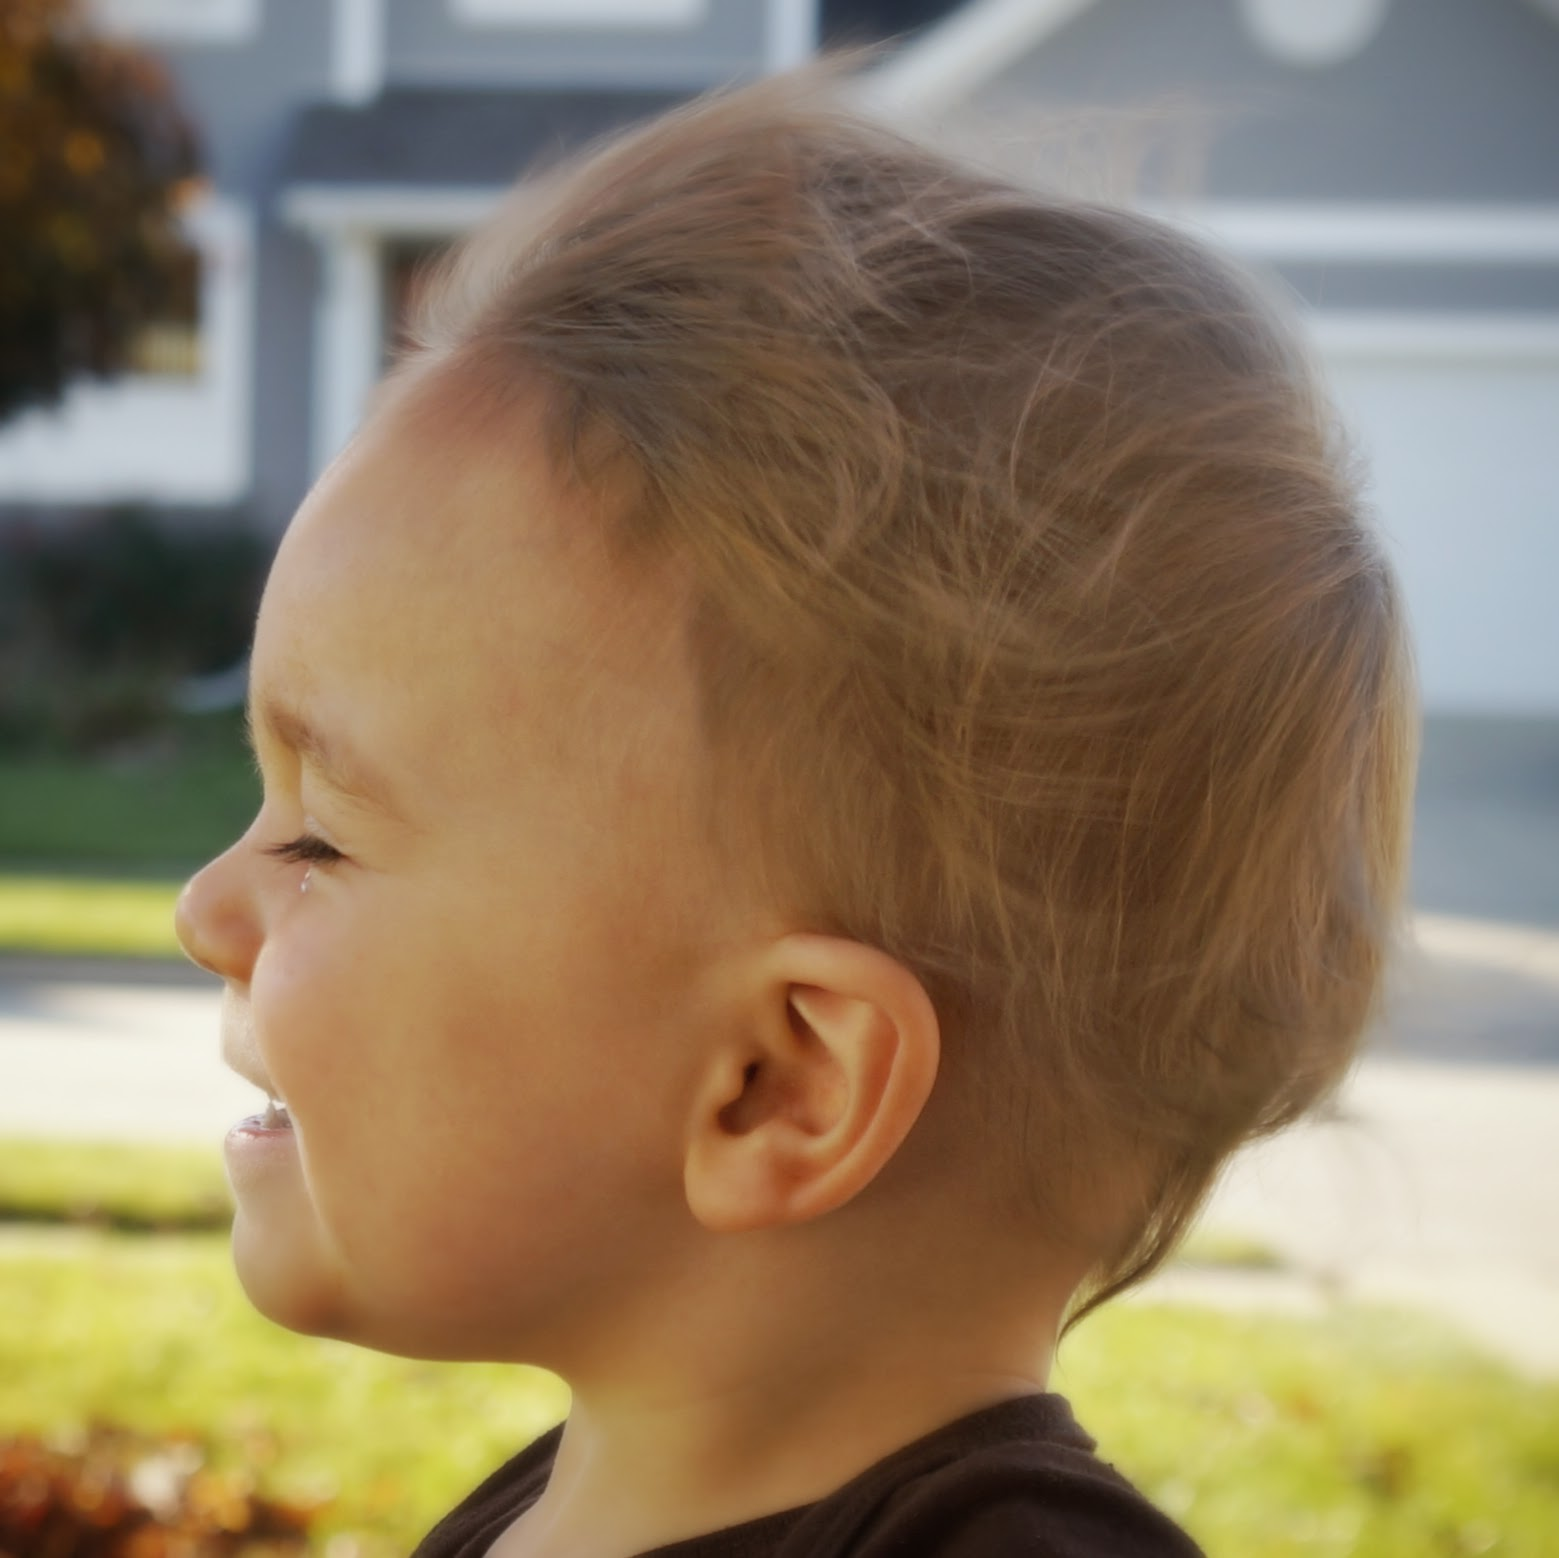 Ryker's hair blowing in the wind